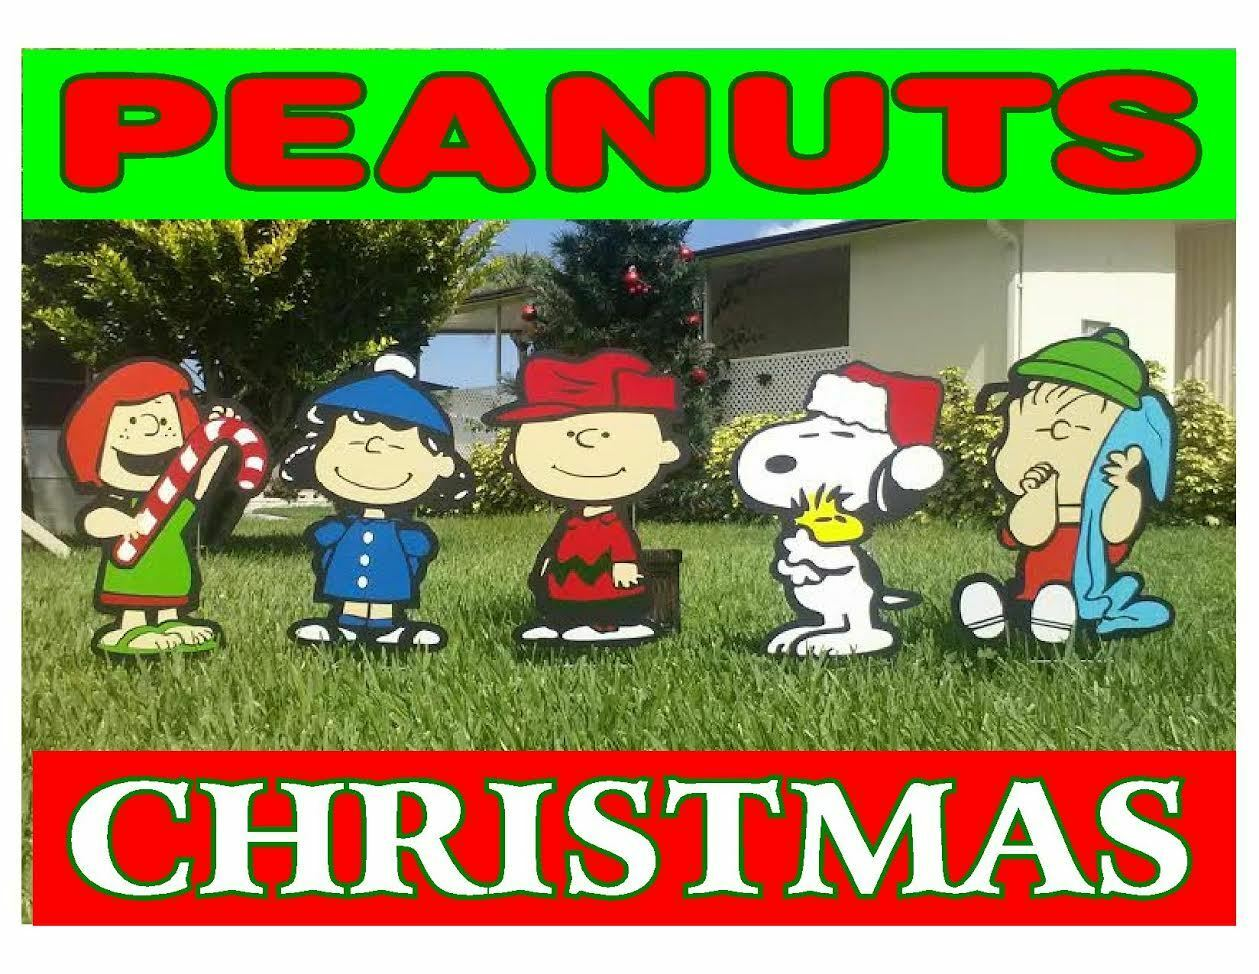 peanuts snoopy combo christmas yard lawn art decorations 1 of 12only 2 available - Snoopy Christmas Yard Decorations